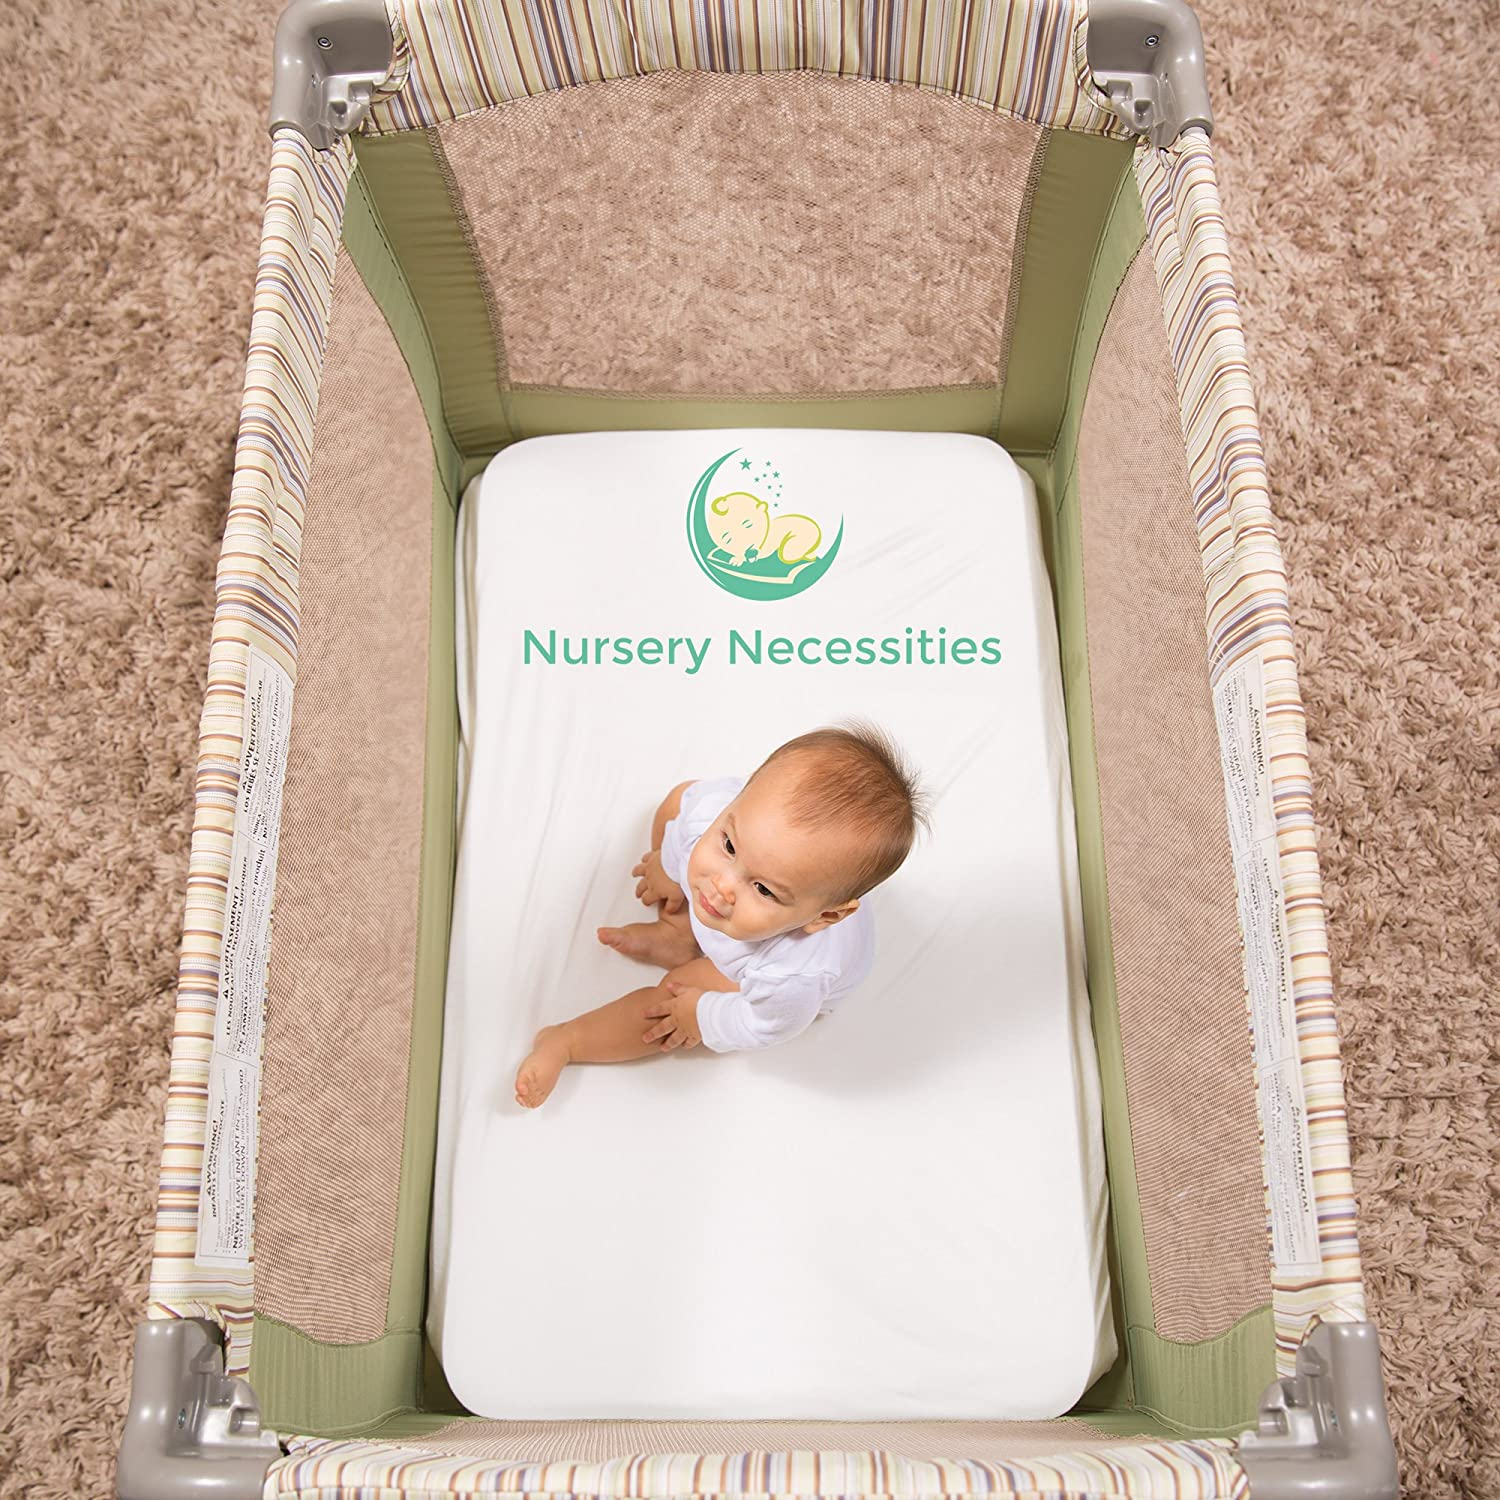 Superior to Cotton Hypoallergenic 100/% Organic Bamboo Pack N Play Sheet Silky Soft by Nursery Necessities Antibacterial